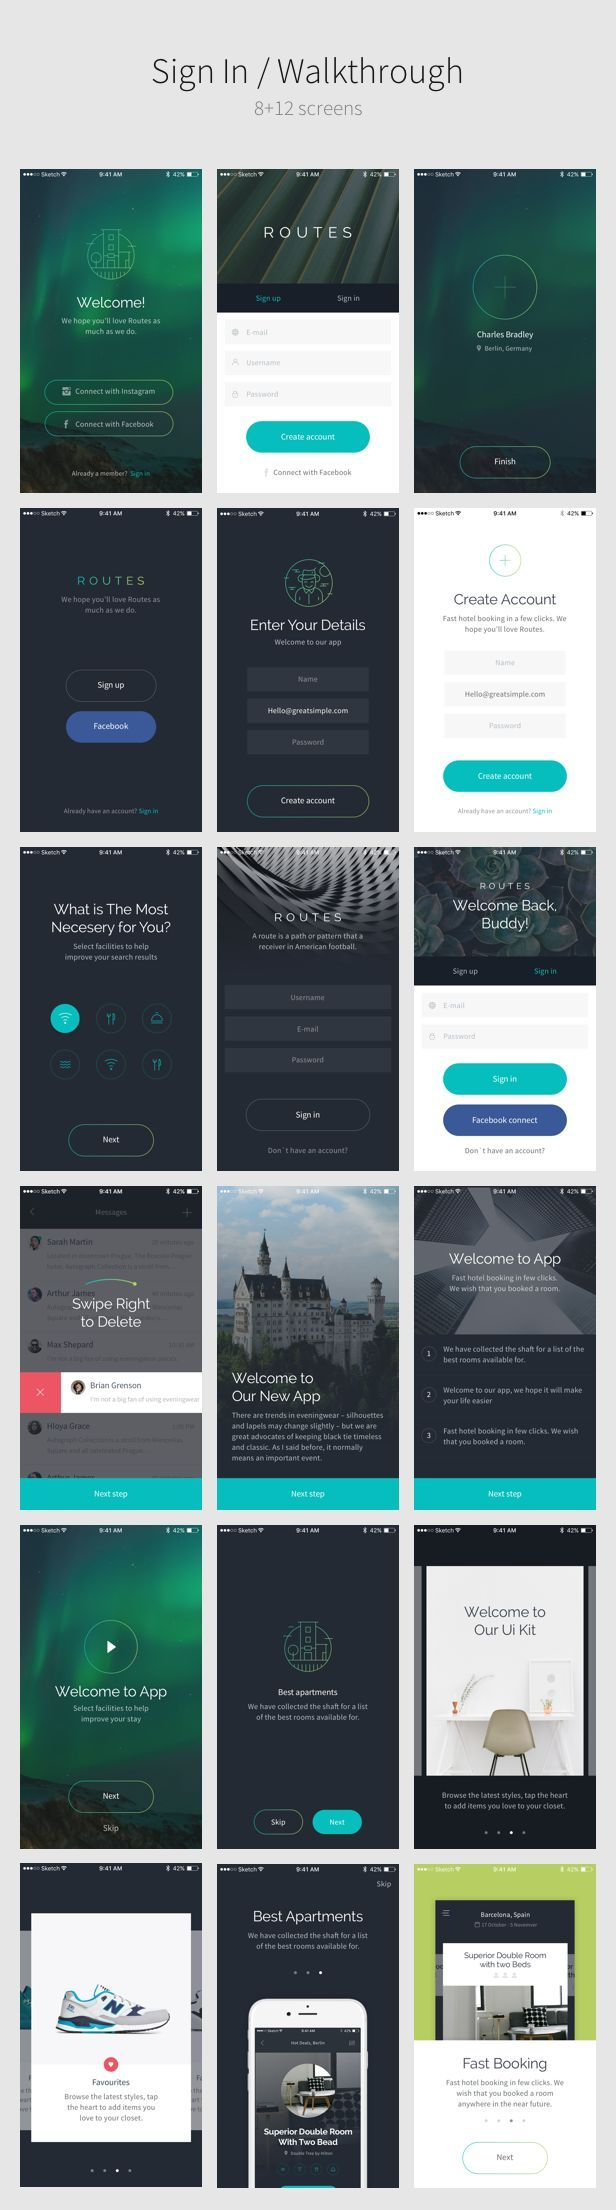 Routes UI Kit - 100+ iOS login, how it work screen. If you like UX, design, or design thinking, check out theuxblog.com